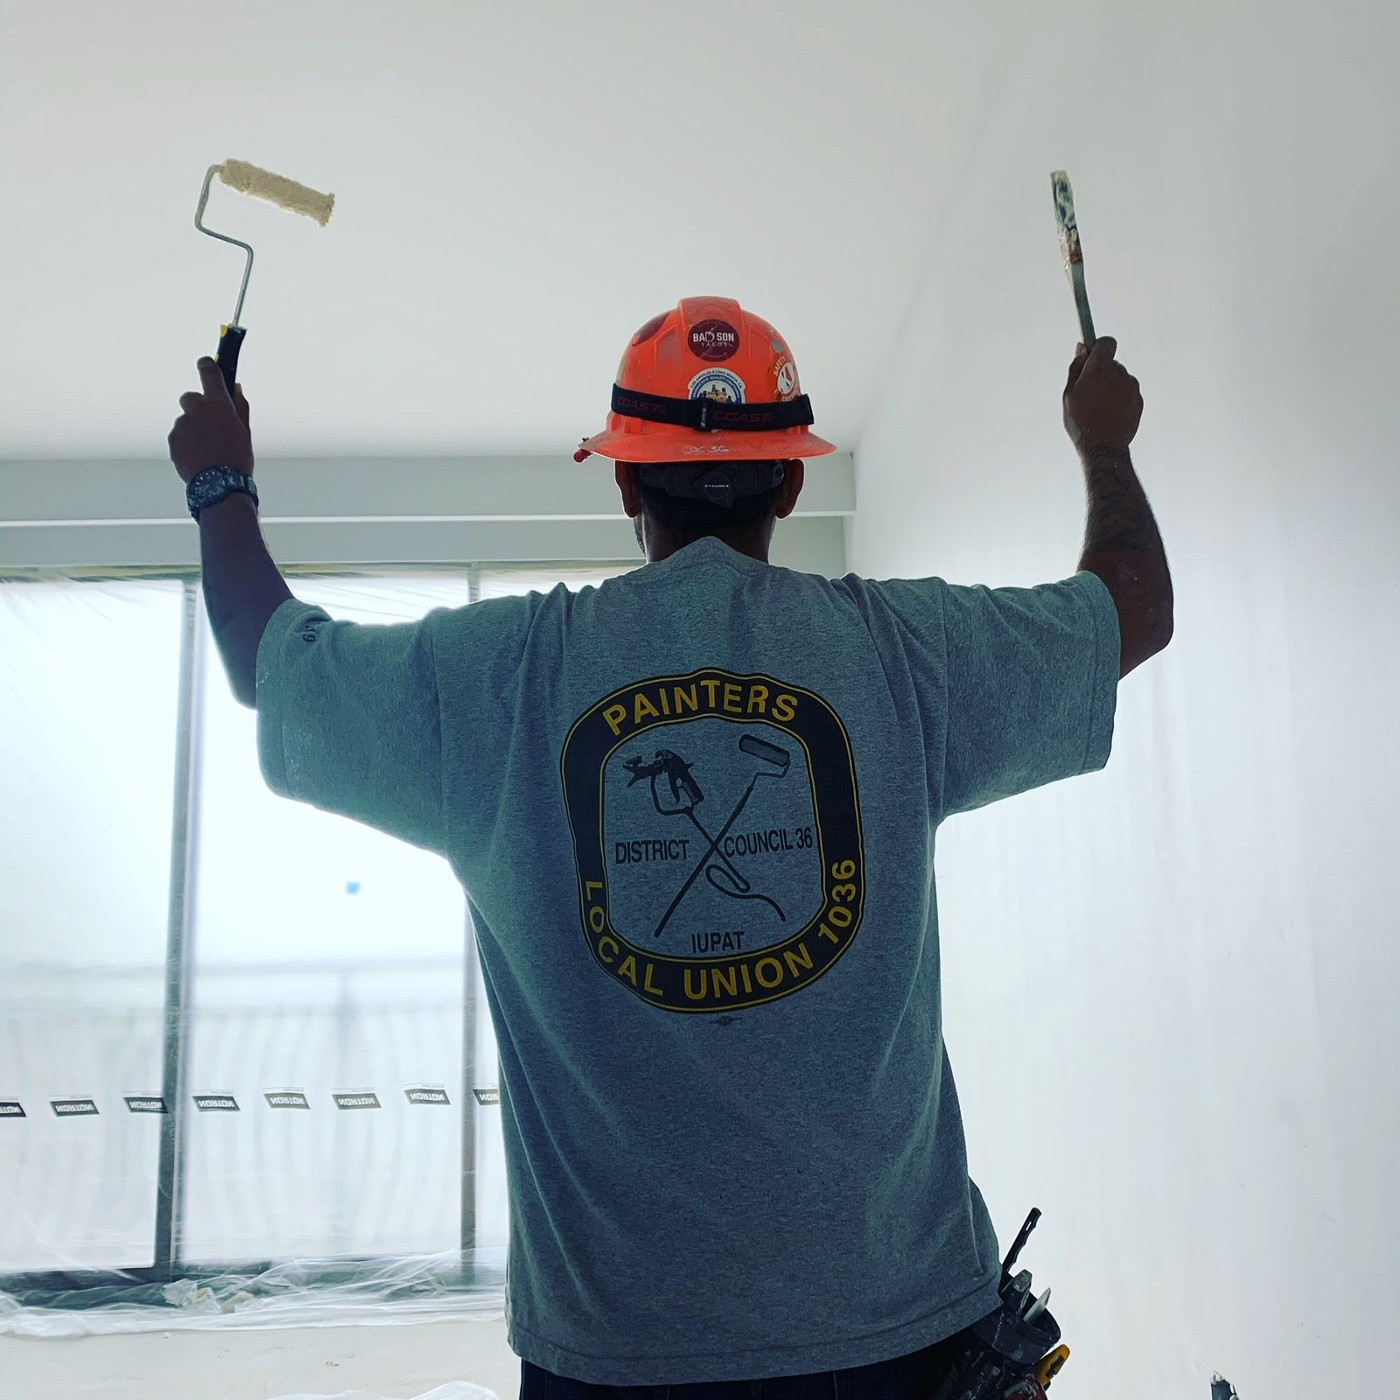 Pictured: ARC member Richard Meza on a worksite as a member of Painters Local Union 1036